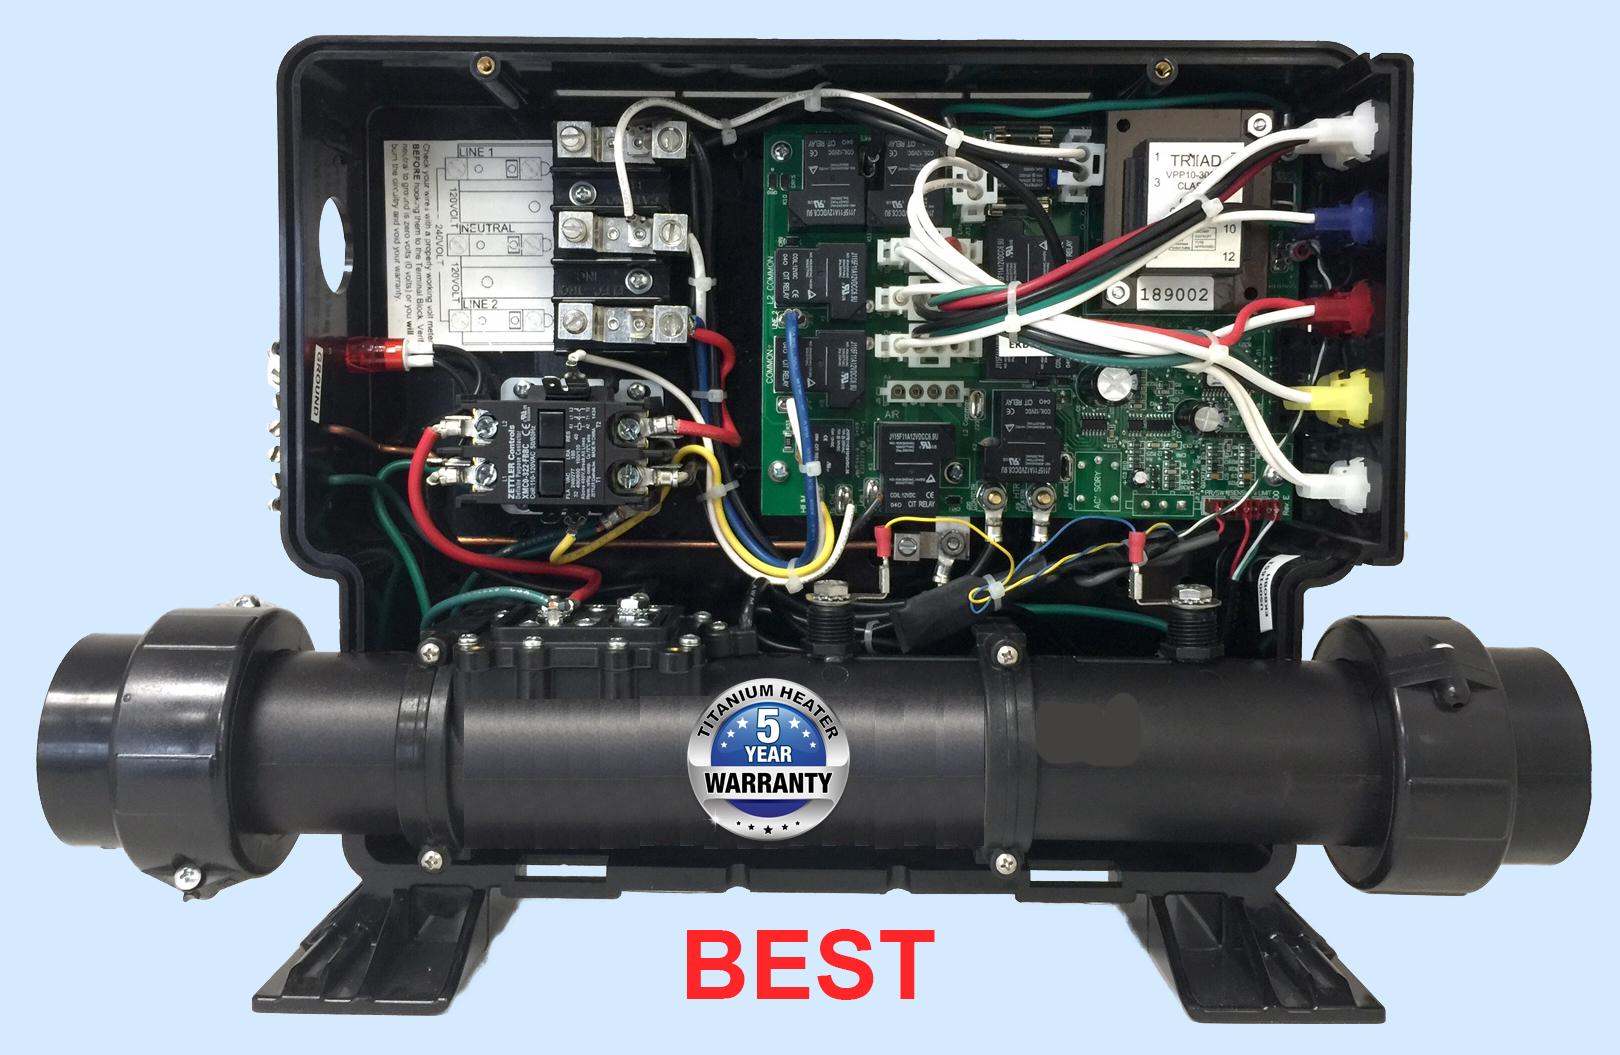 Hot Tub Wiring Diagram Likewise Hot Tub Control Panel Wiring Diagram